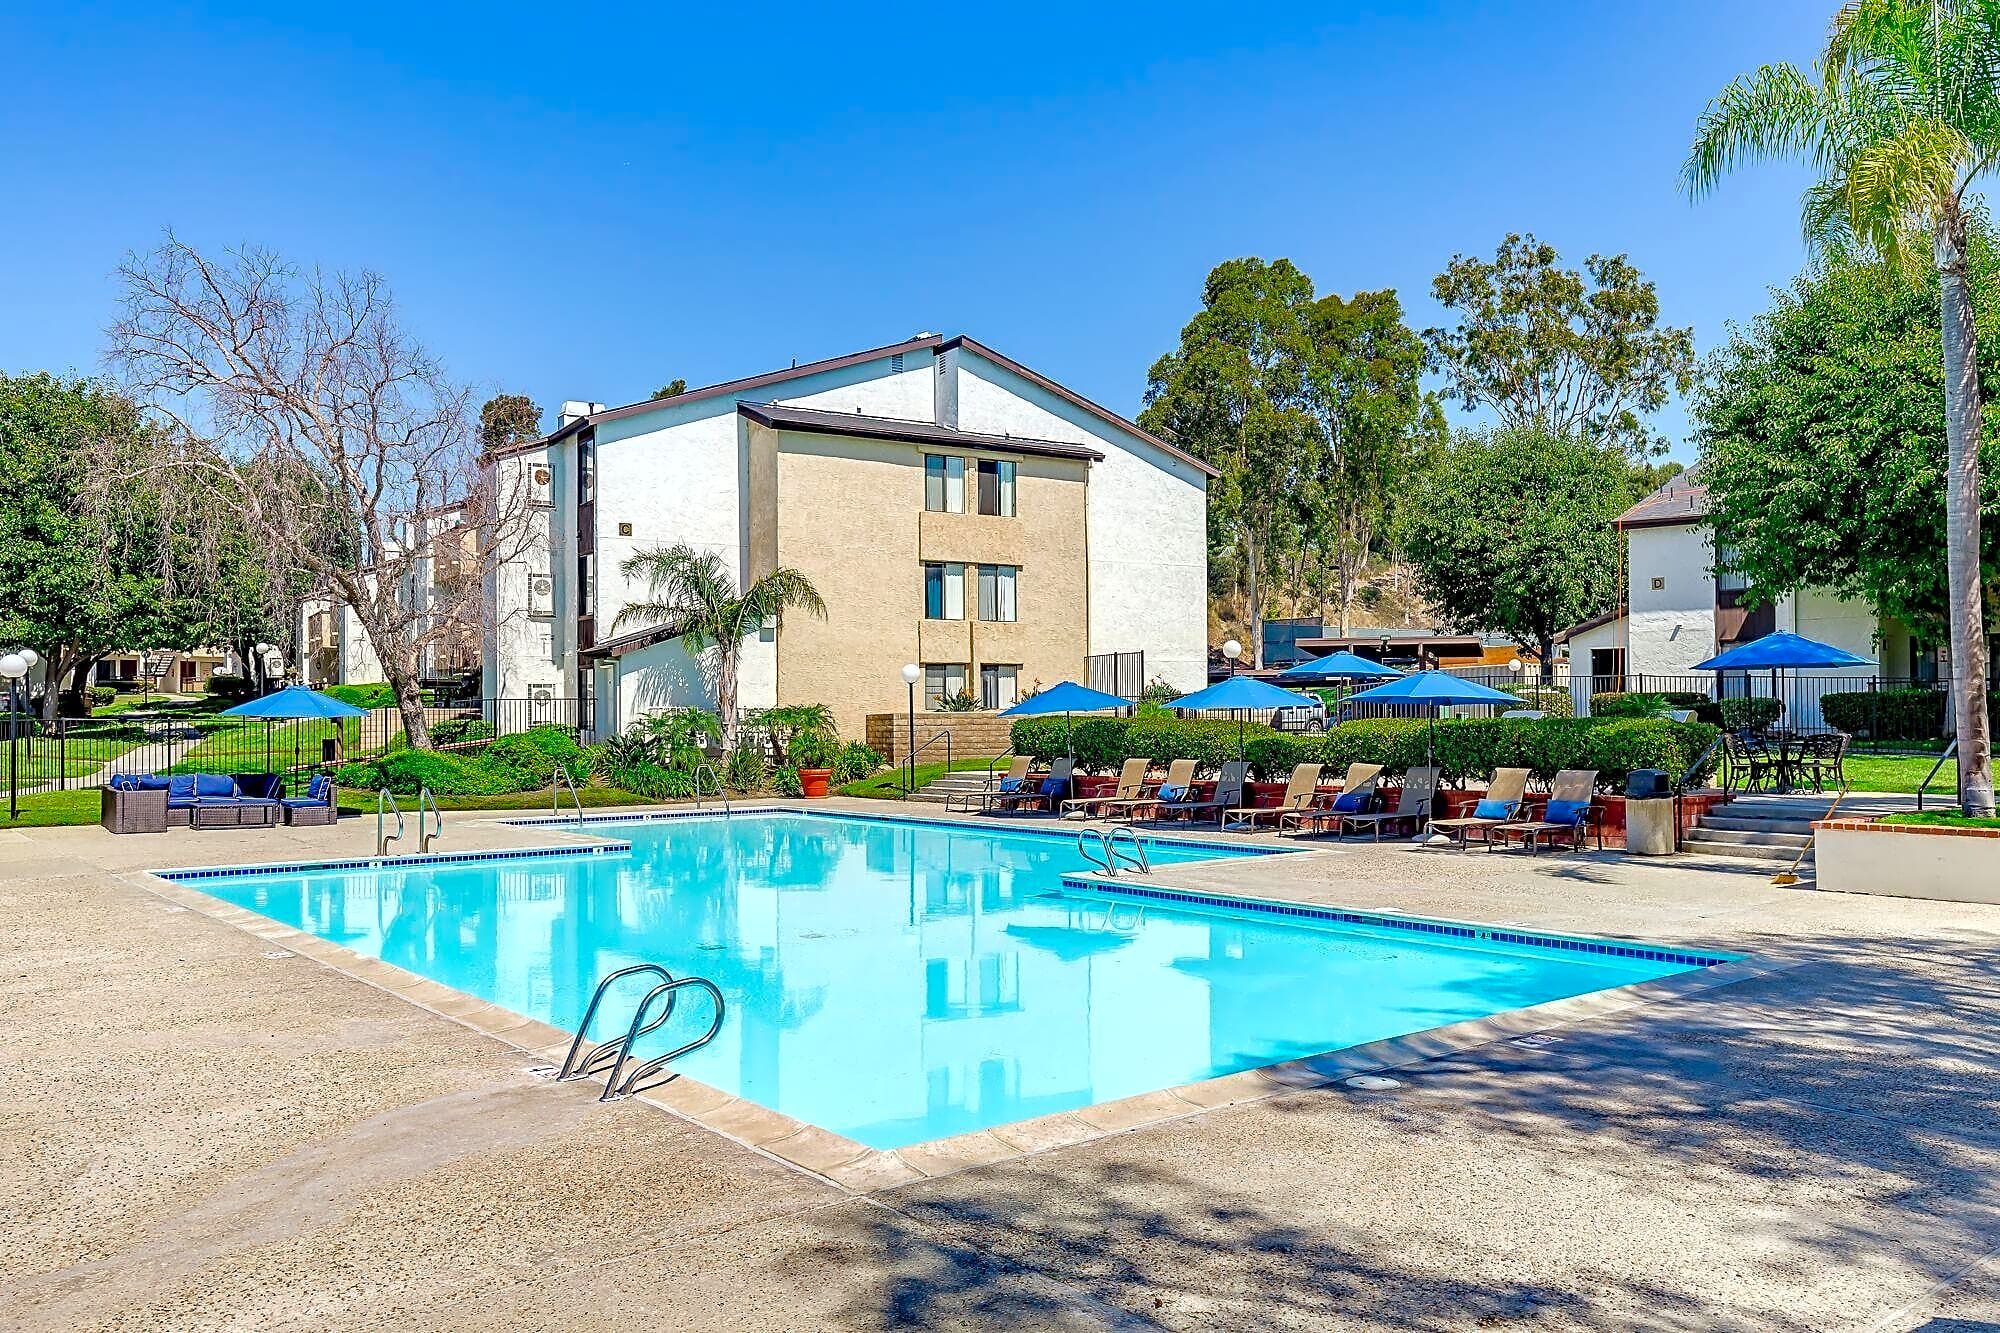 Apartments Near Palomar Pepperwood Apartments for Palomar College Students in San Marcos, CA